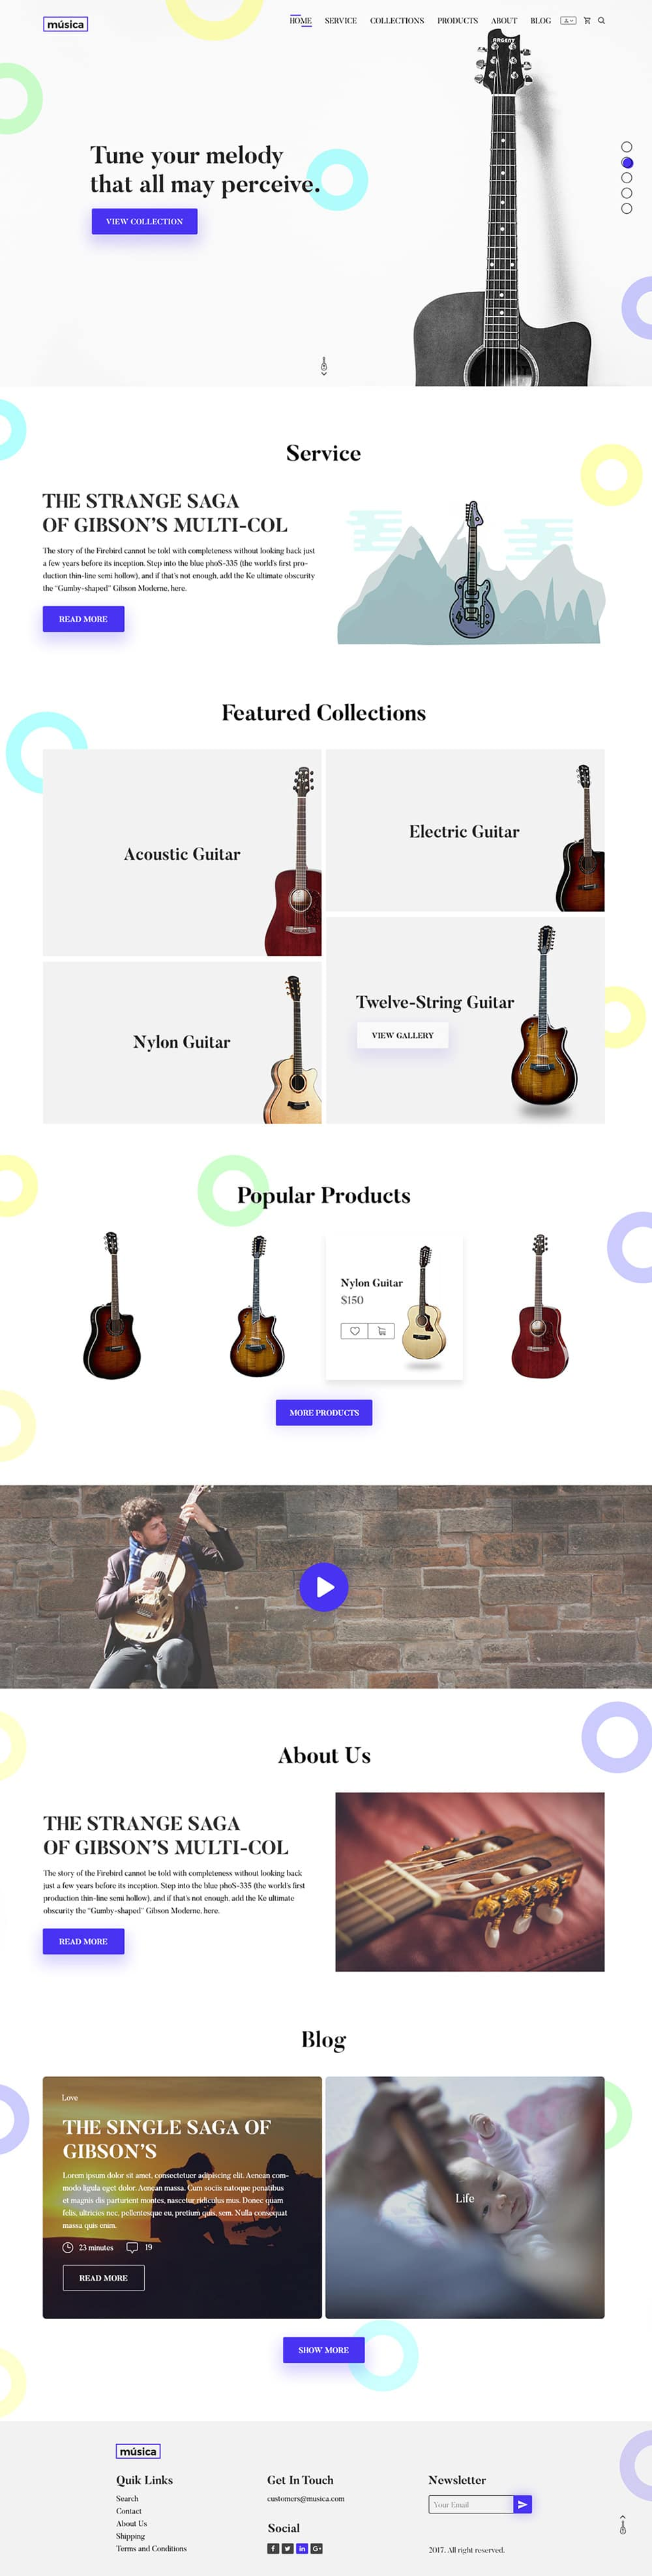 Guitar Store E commerce Web Template PSD